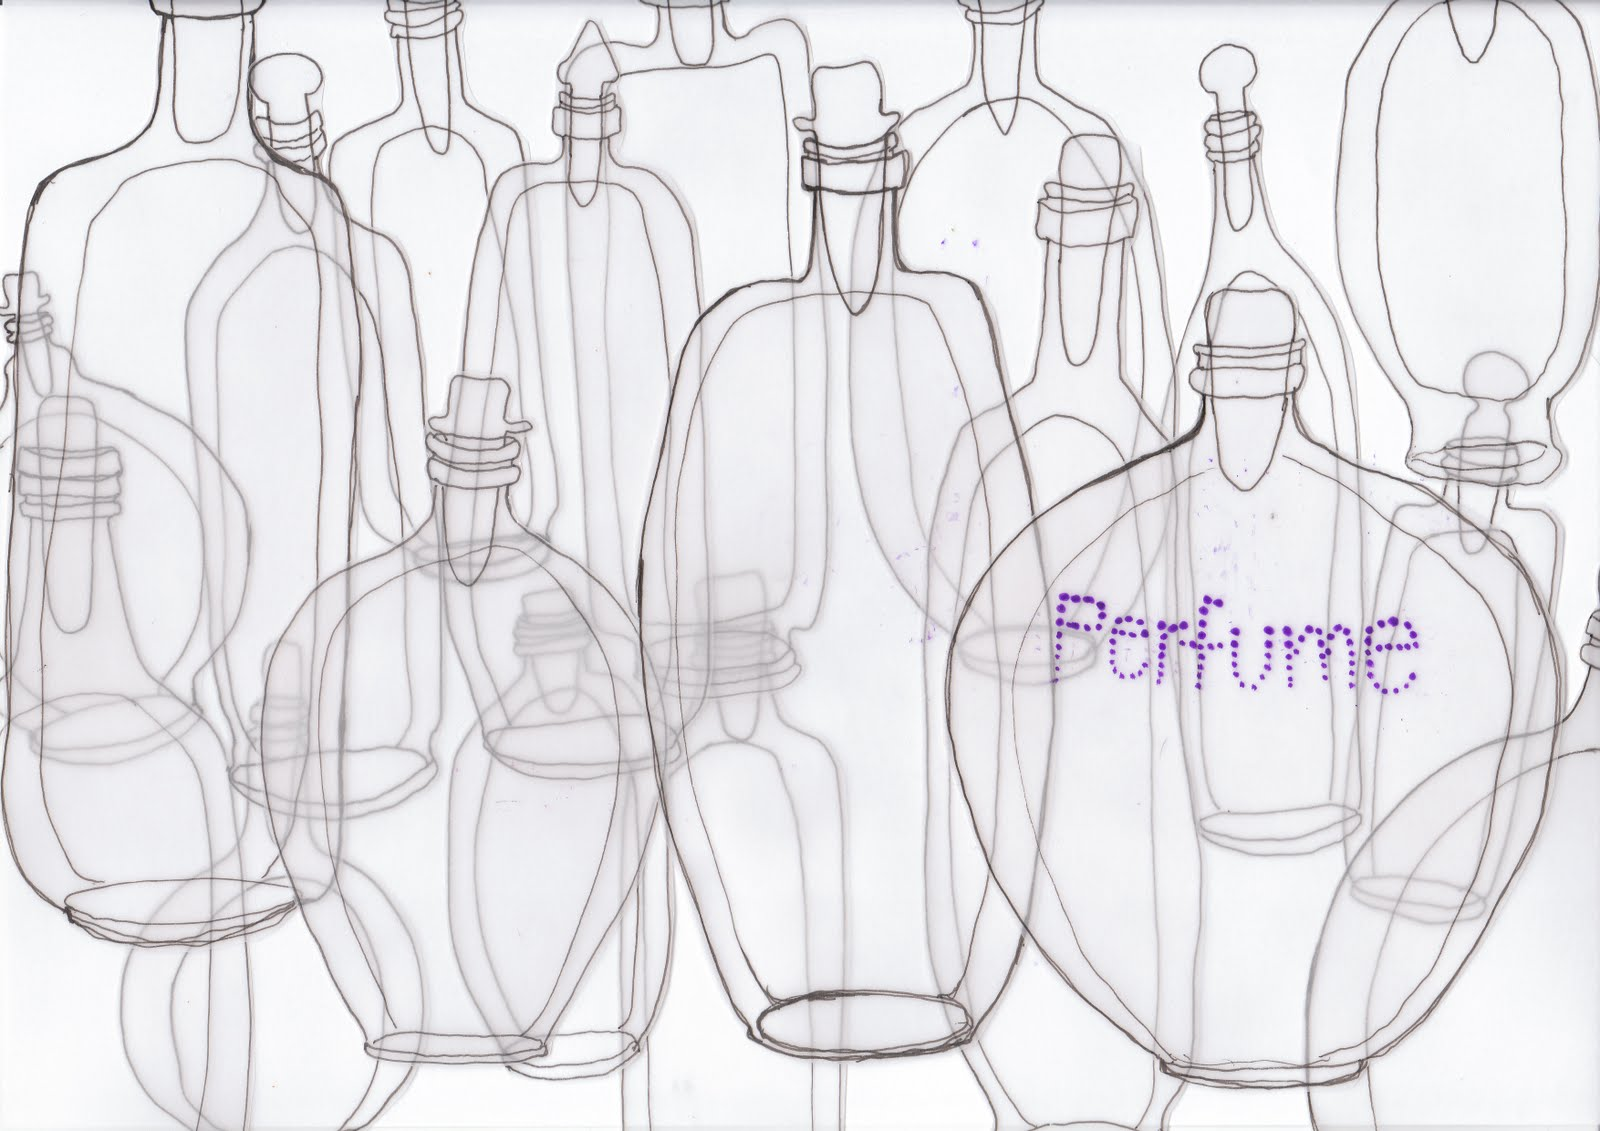 I hate butterflies: bottles, lots of bottles